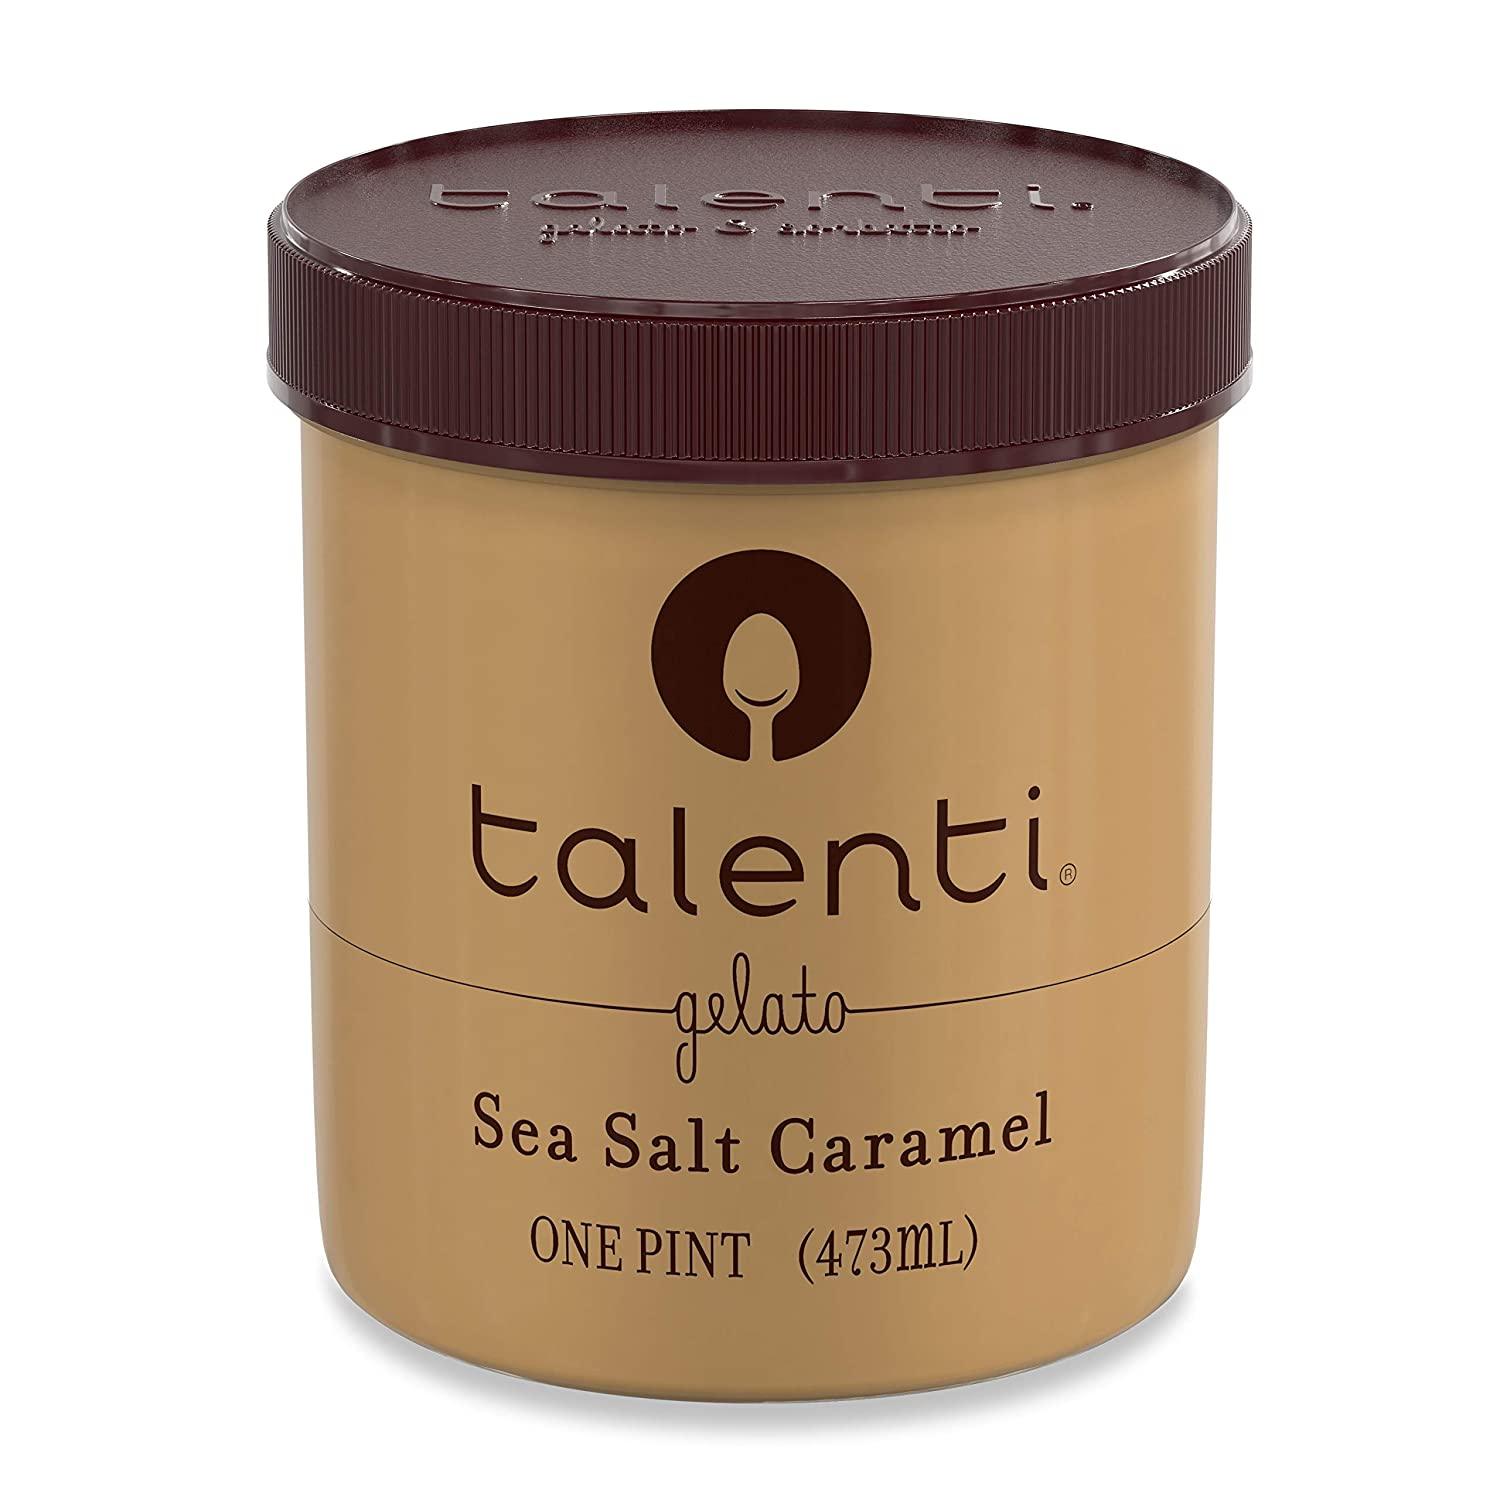 Talenti Gelato, Sea Salt Caramel, 1 pt: Amazon.com: Grocery & Gourmet Food